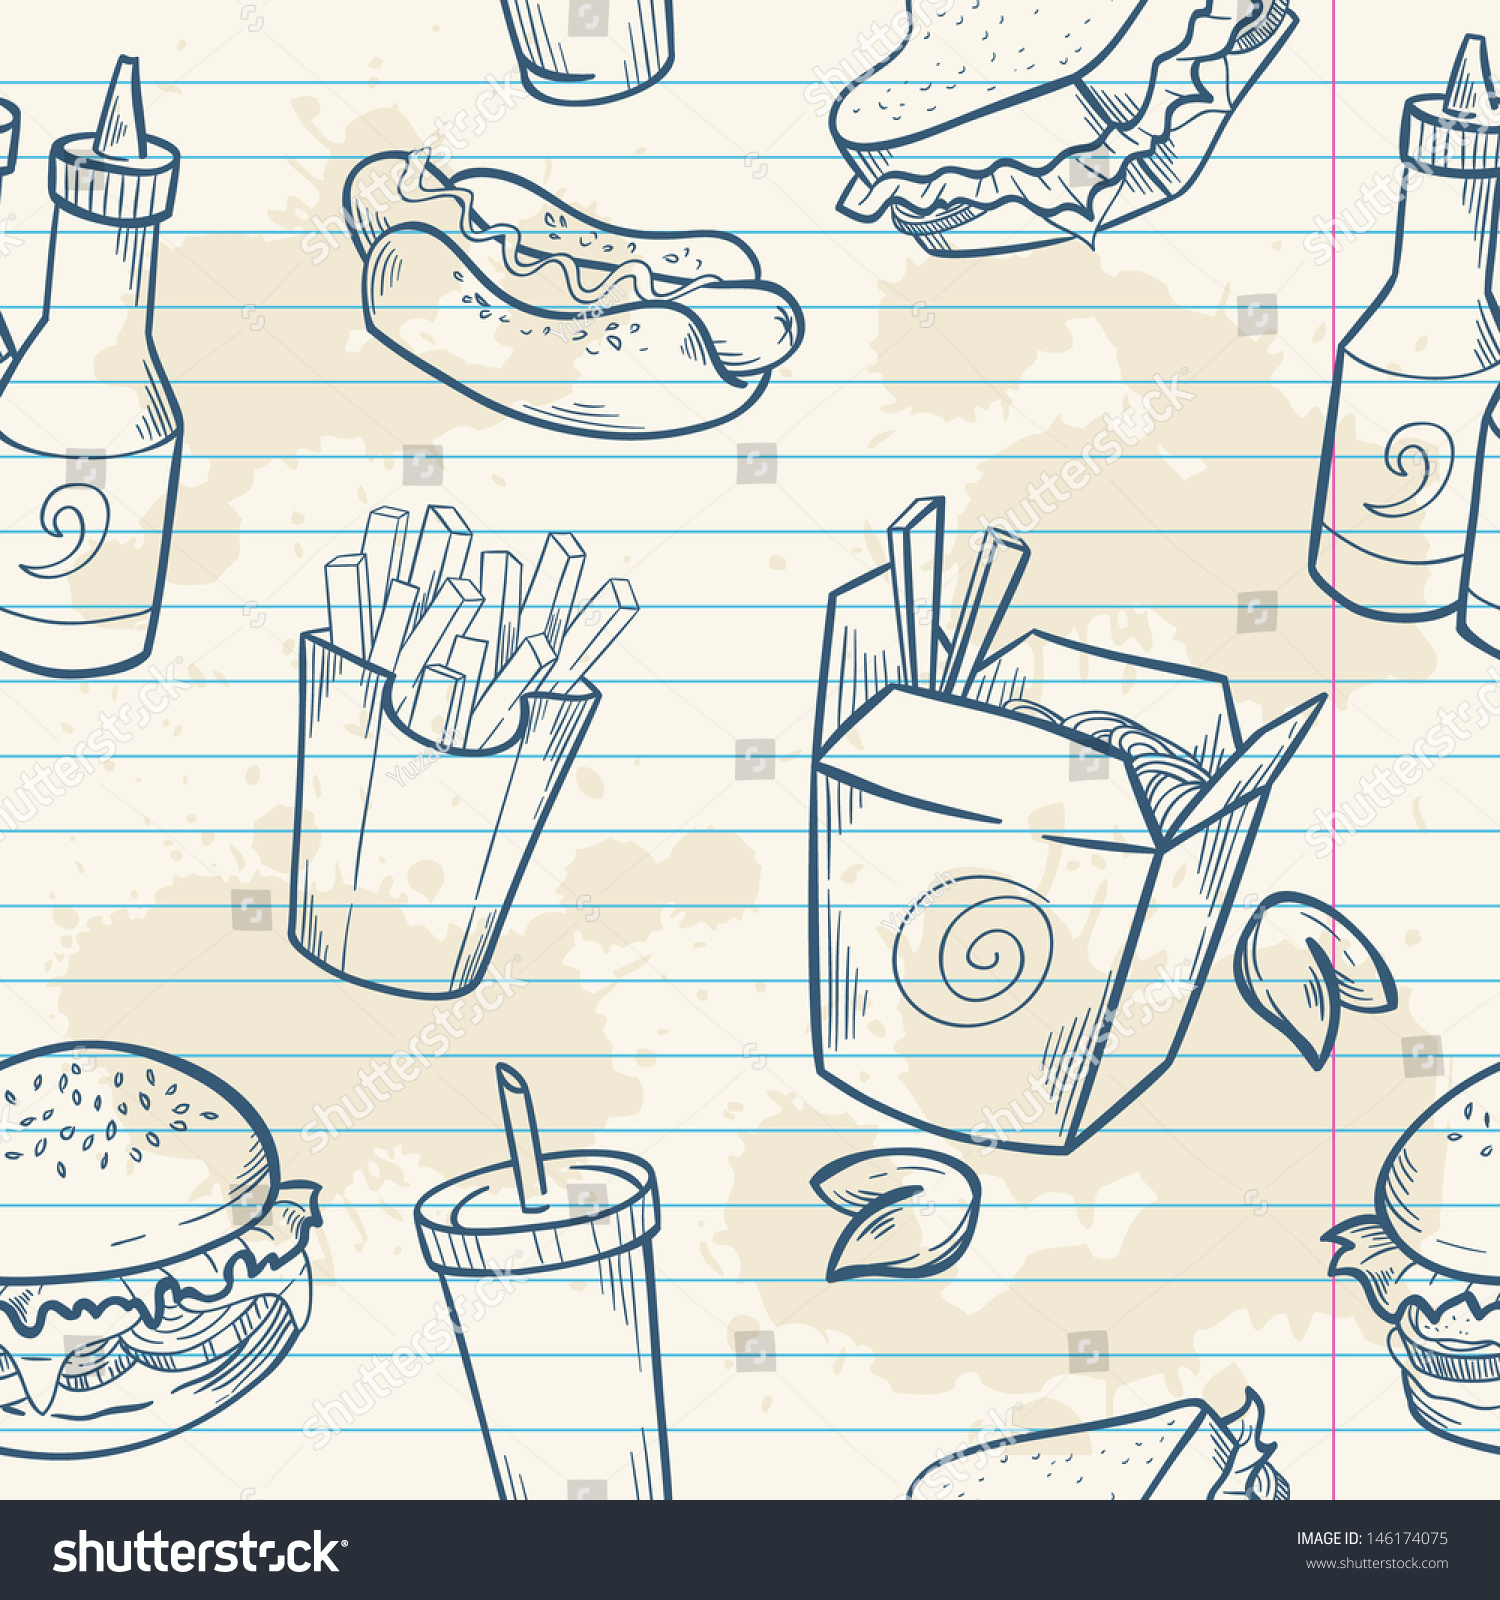 Fastfood Delicious Hand Drawn Vector Seamless Stock Vector